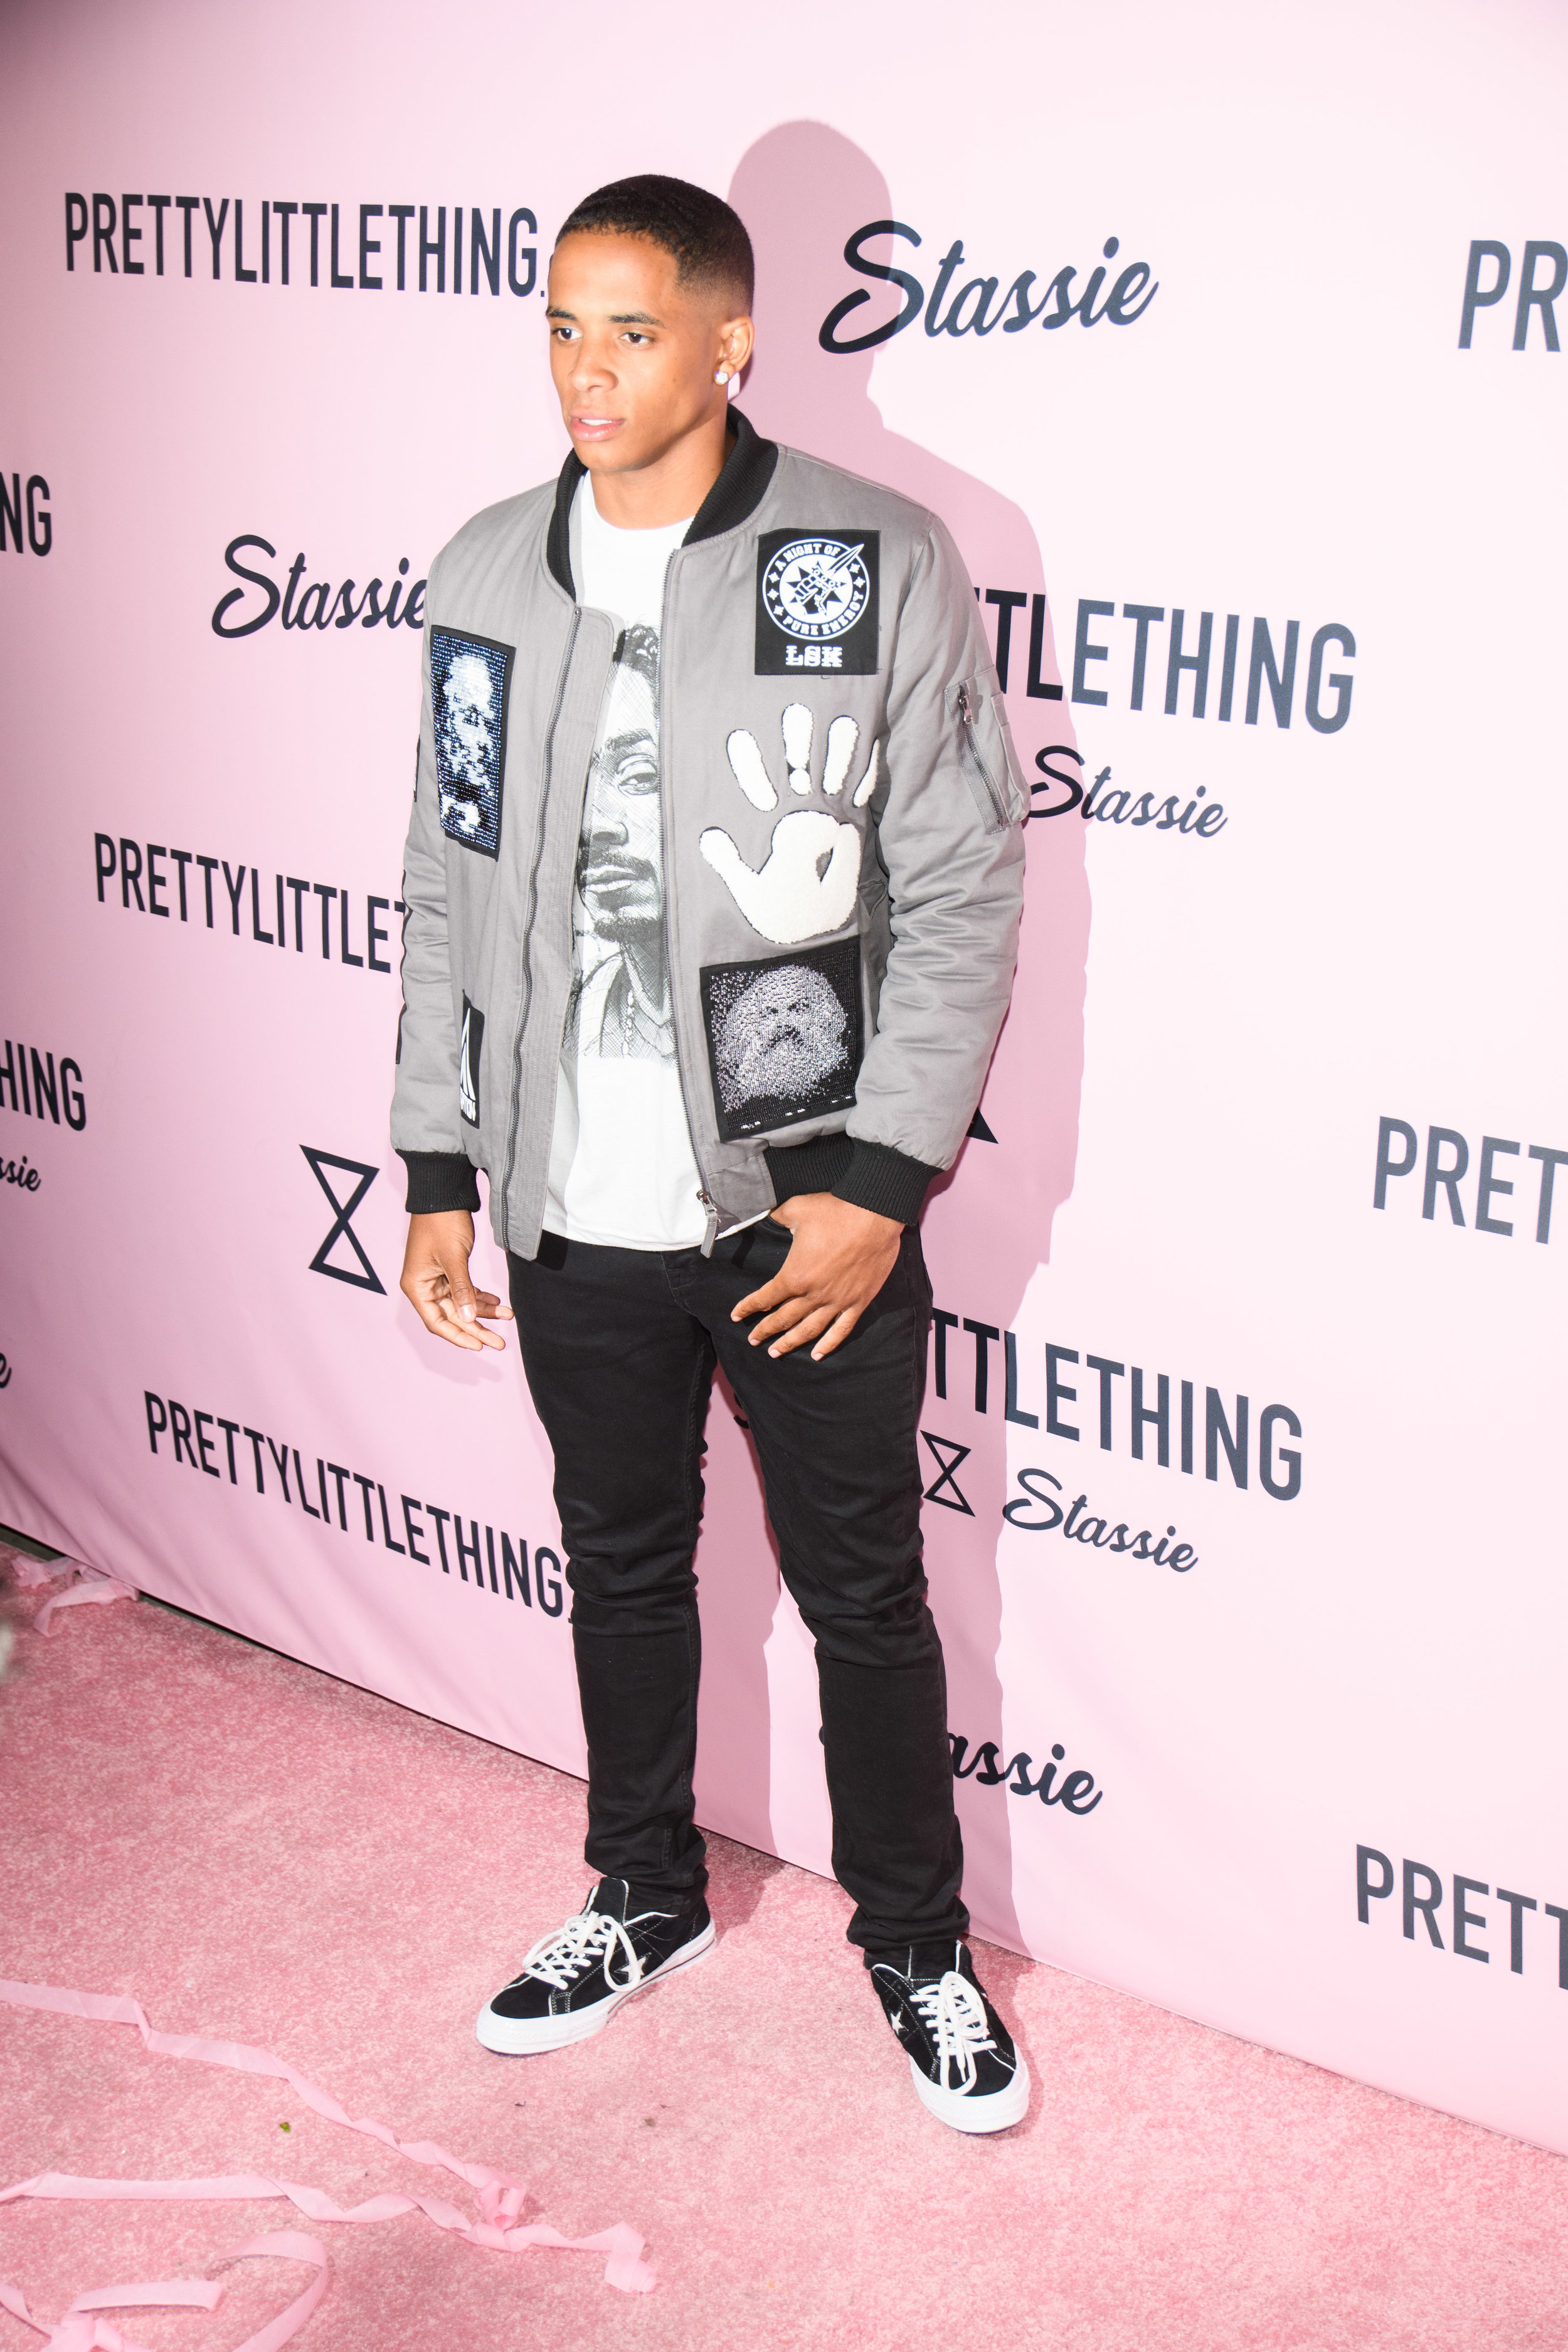 PrettyLittleThing New PLT Shape Collection with Stassie Celebrity Launch Party Snopp Doggs son Corde Broadus .jpg